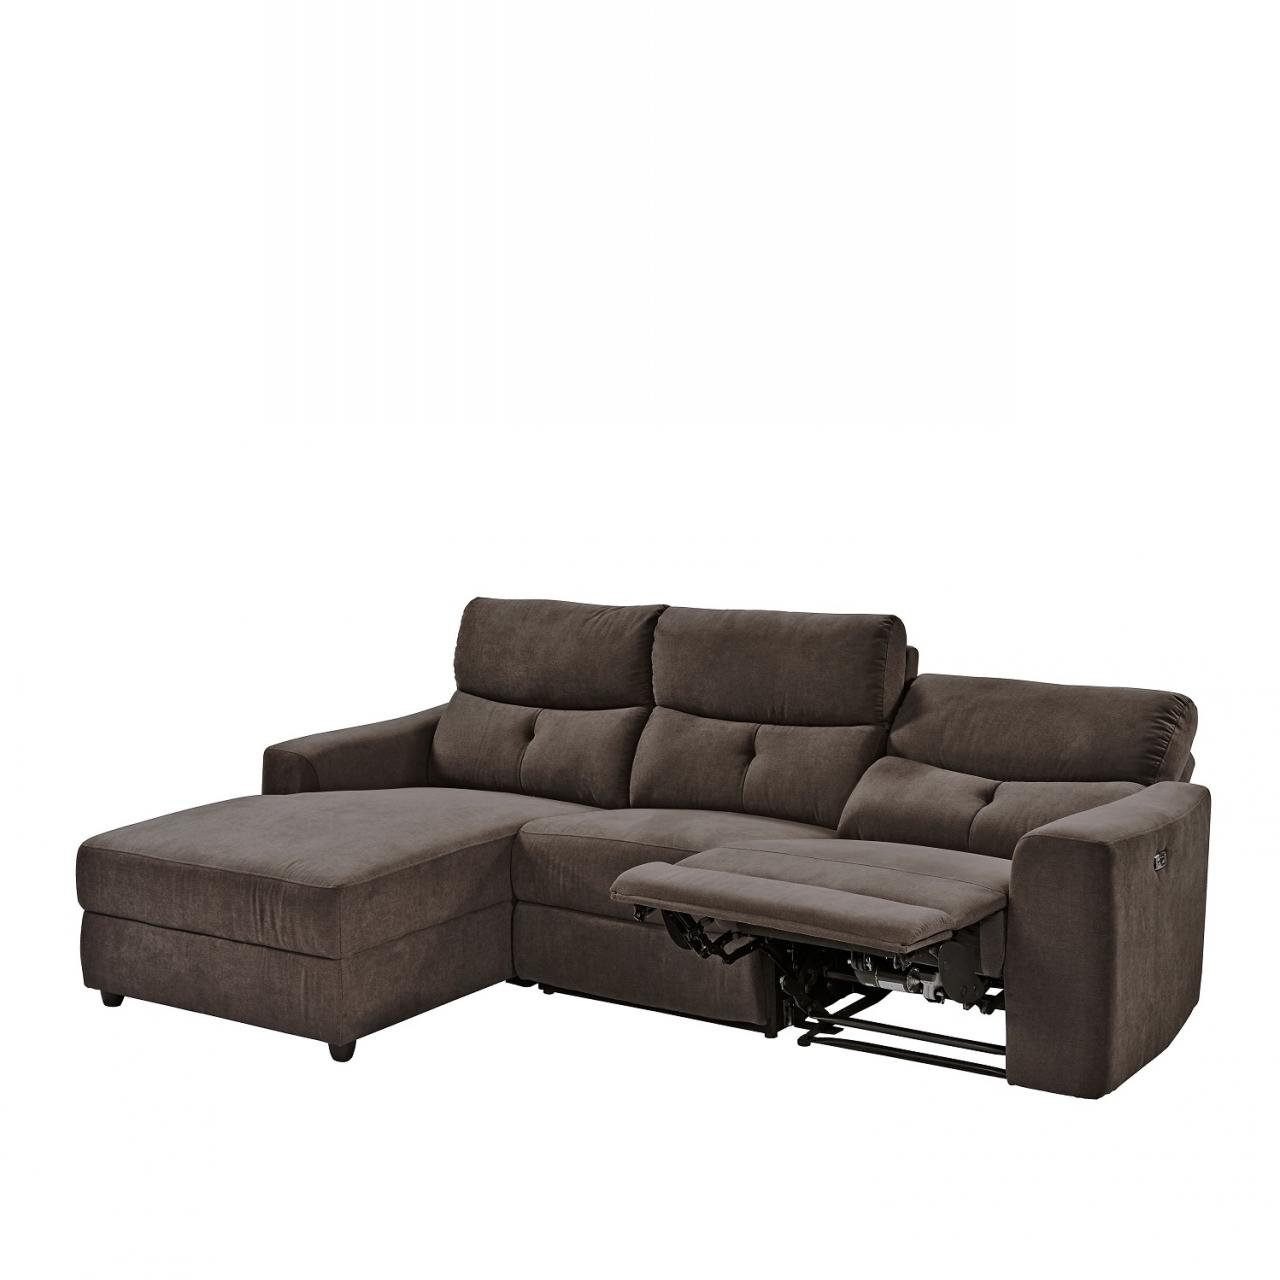 Sofa FM-3022 Stoff Grau Mit Relaxfunktion Polstergarnitur Couch L-Form